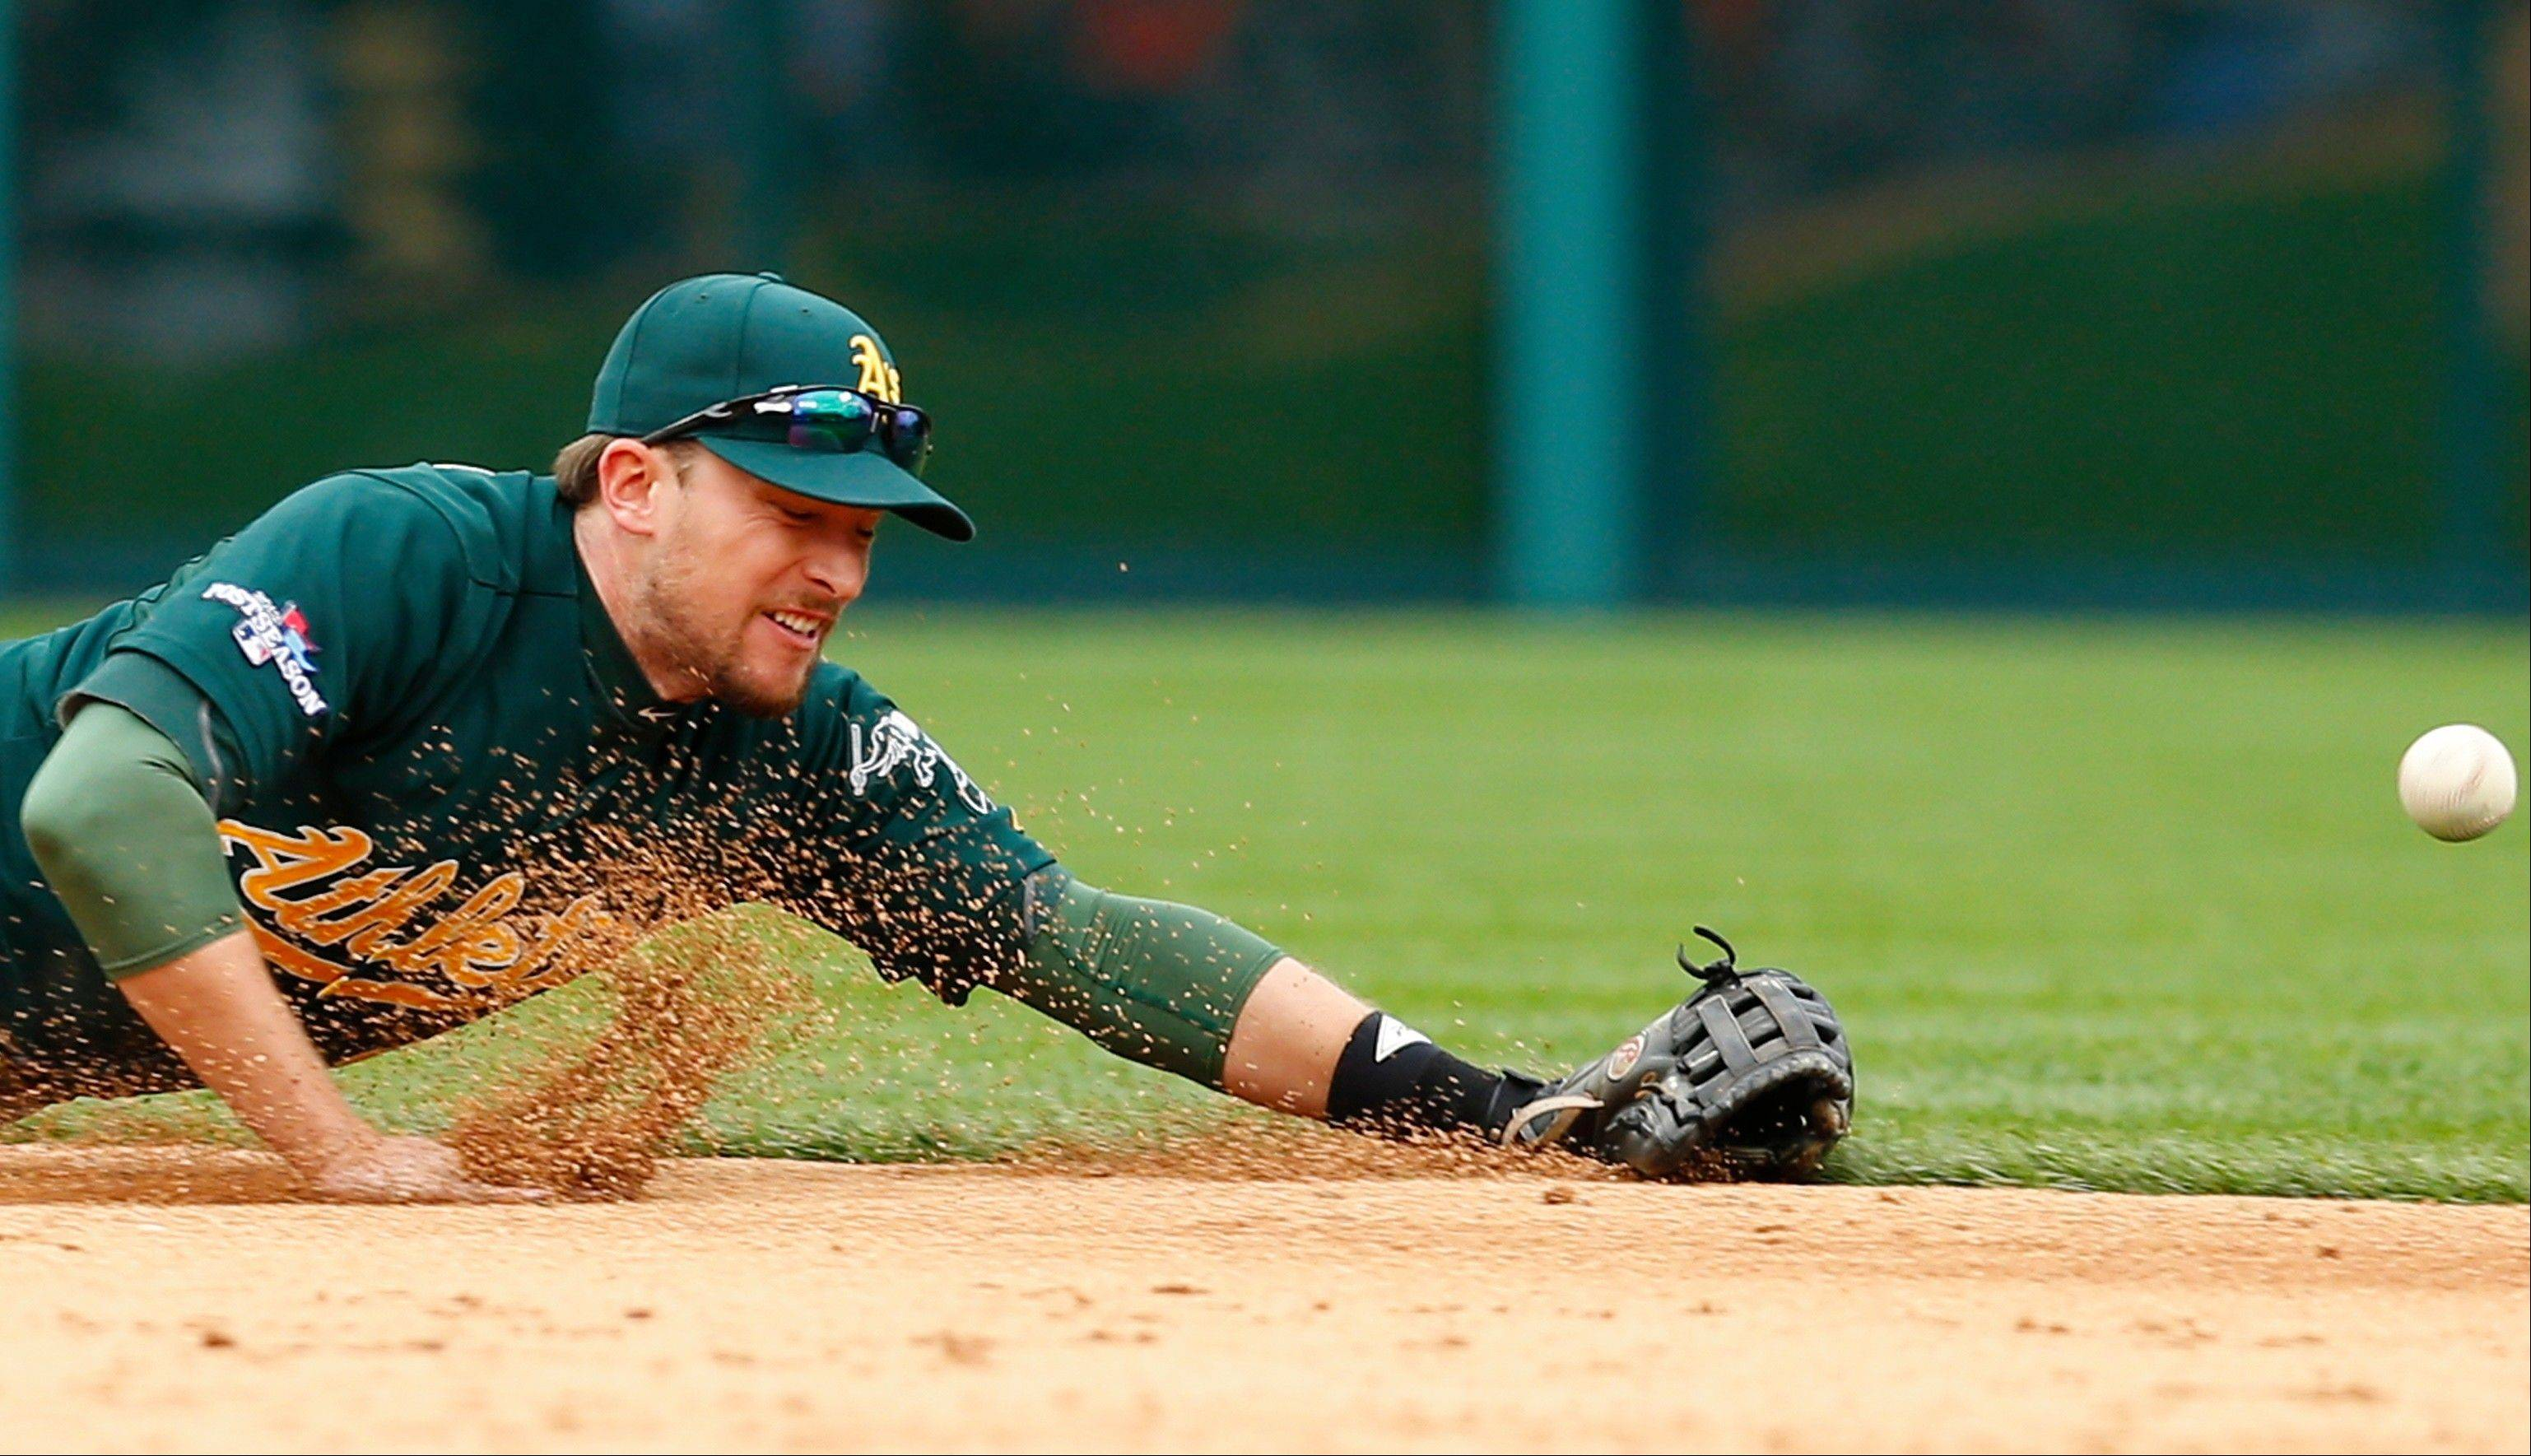 Athletics shortstop Jed Lowrie dives but is unable to stop the single by the Tigers' Prince Fielder during the sixth inning Monday in Detroit.